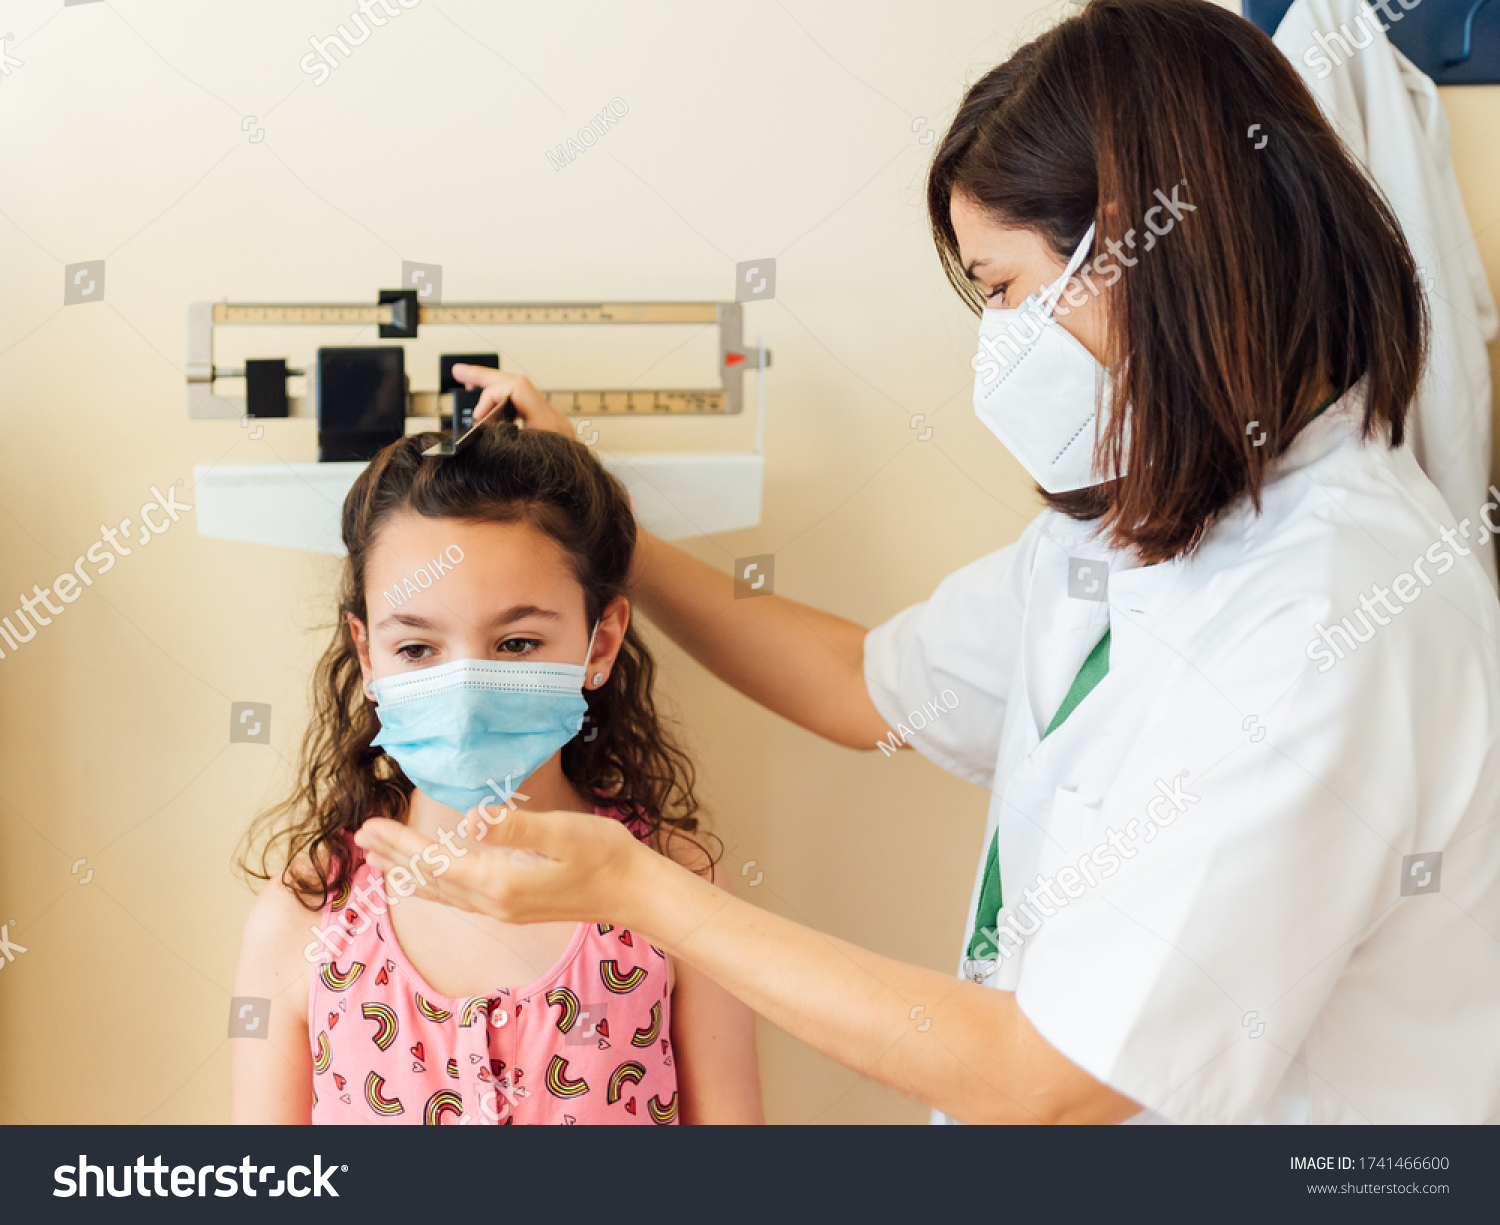 The pediatric doctor measures and weighs the child in the clinic office. They both wear a mask to protect against the covid-19 virus. The young girl is examined in the hospital to see how she is growi #1741466600